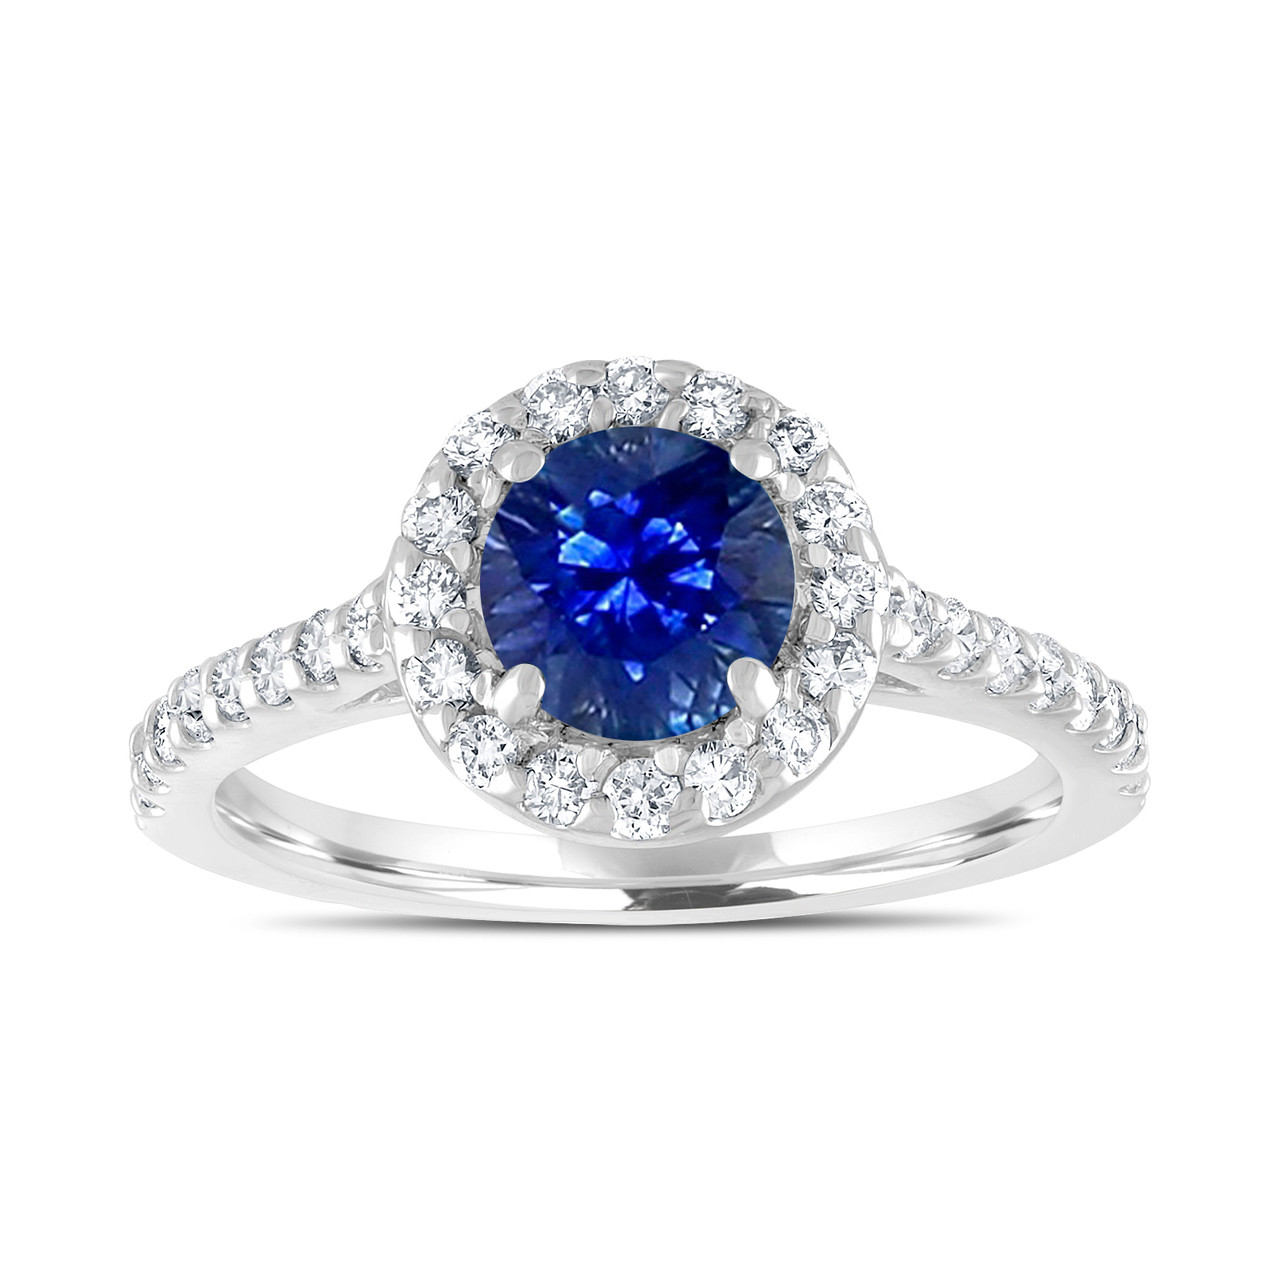 Sapphire Wedding Rings.Sapphire Engagement Ring With Diamonds Bridal Ring Blue Sapphire Wedding Ring 1 54 Carat 14k White Gold Certified Halo Pave Handmade